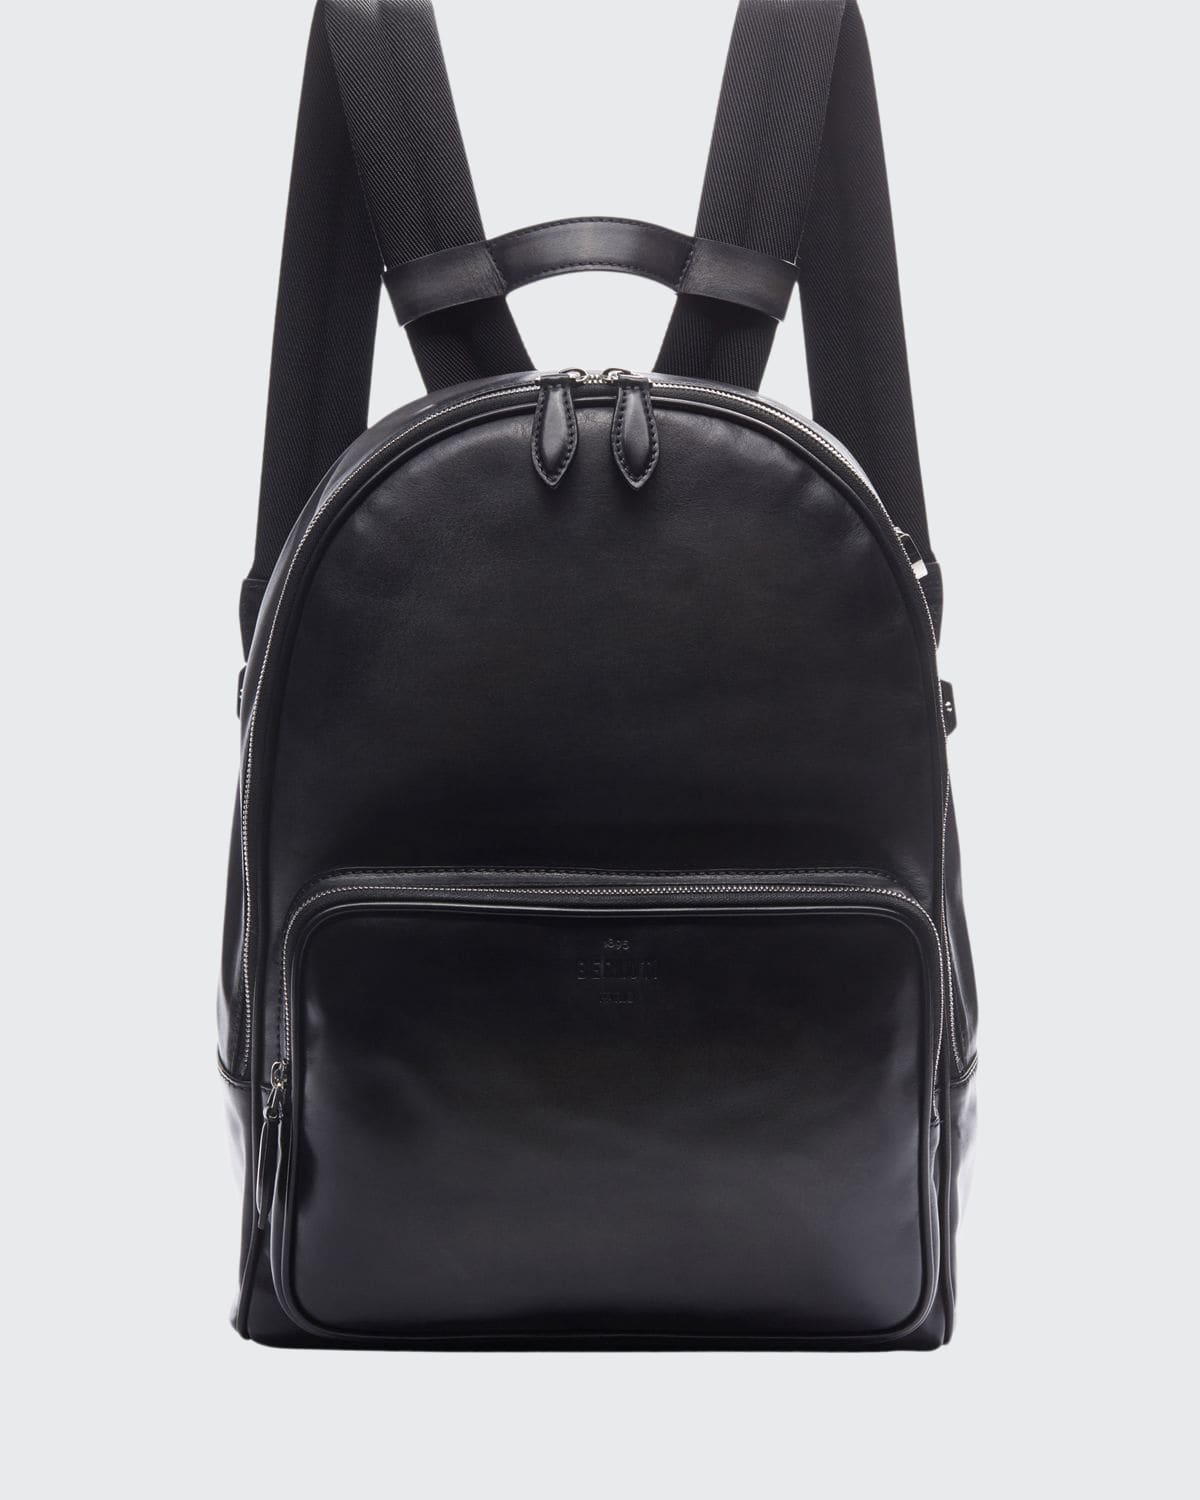 Men's Time off Venezia Solid Leather Backpack